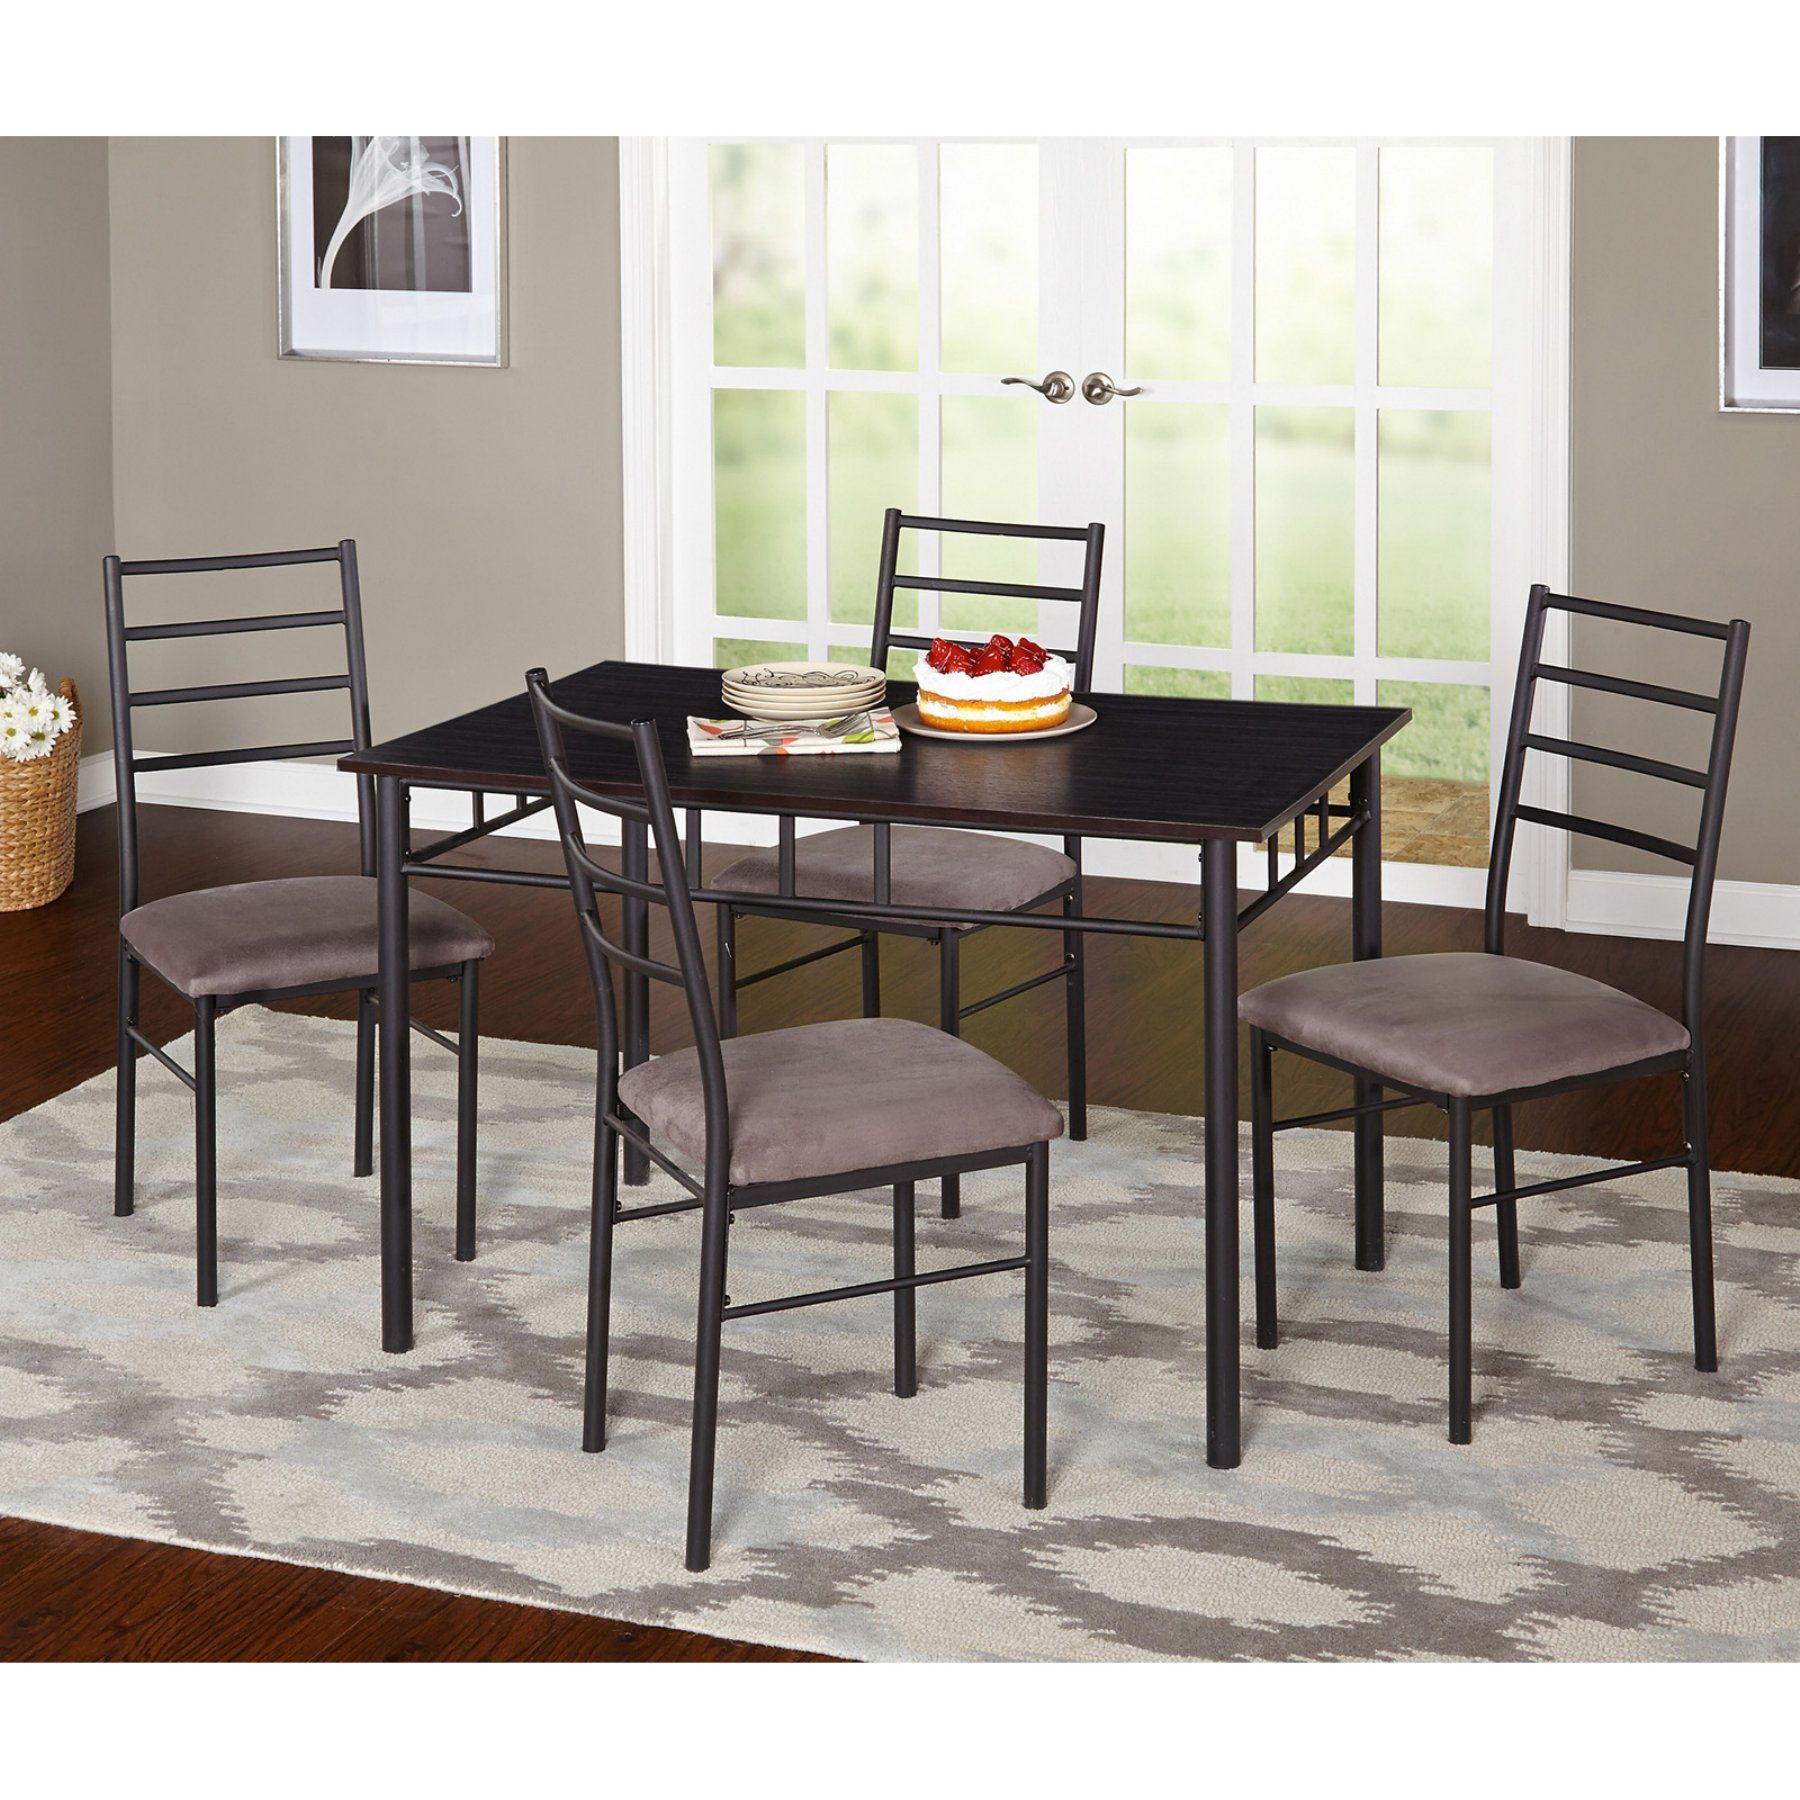 Target Marketing Systems Liv 5 Piece Dining Table Set 88015bkg